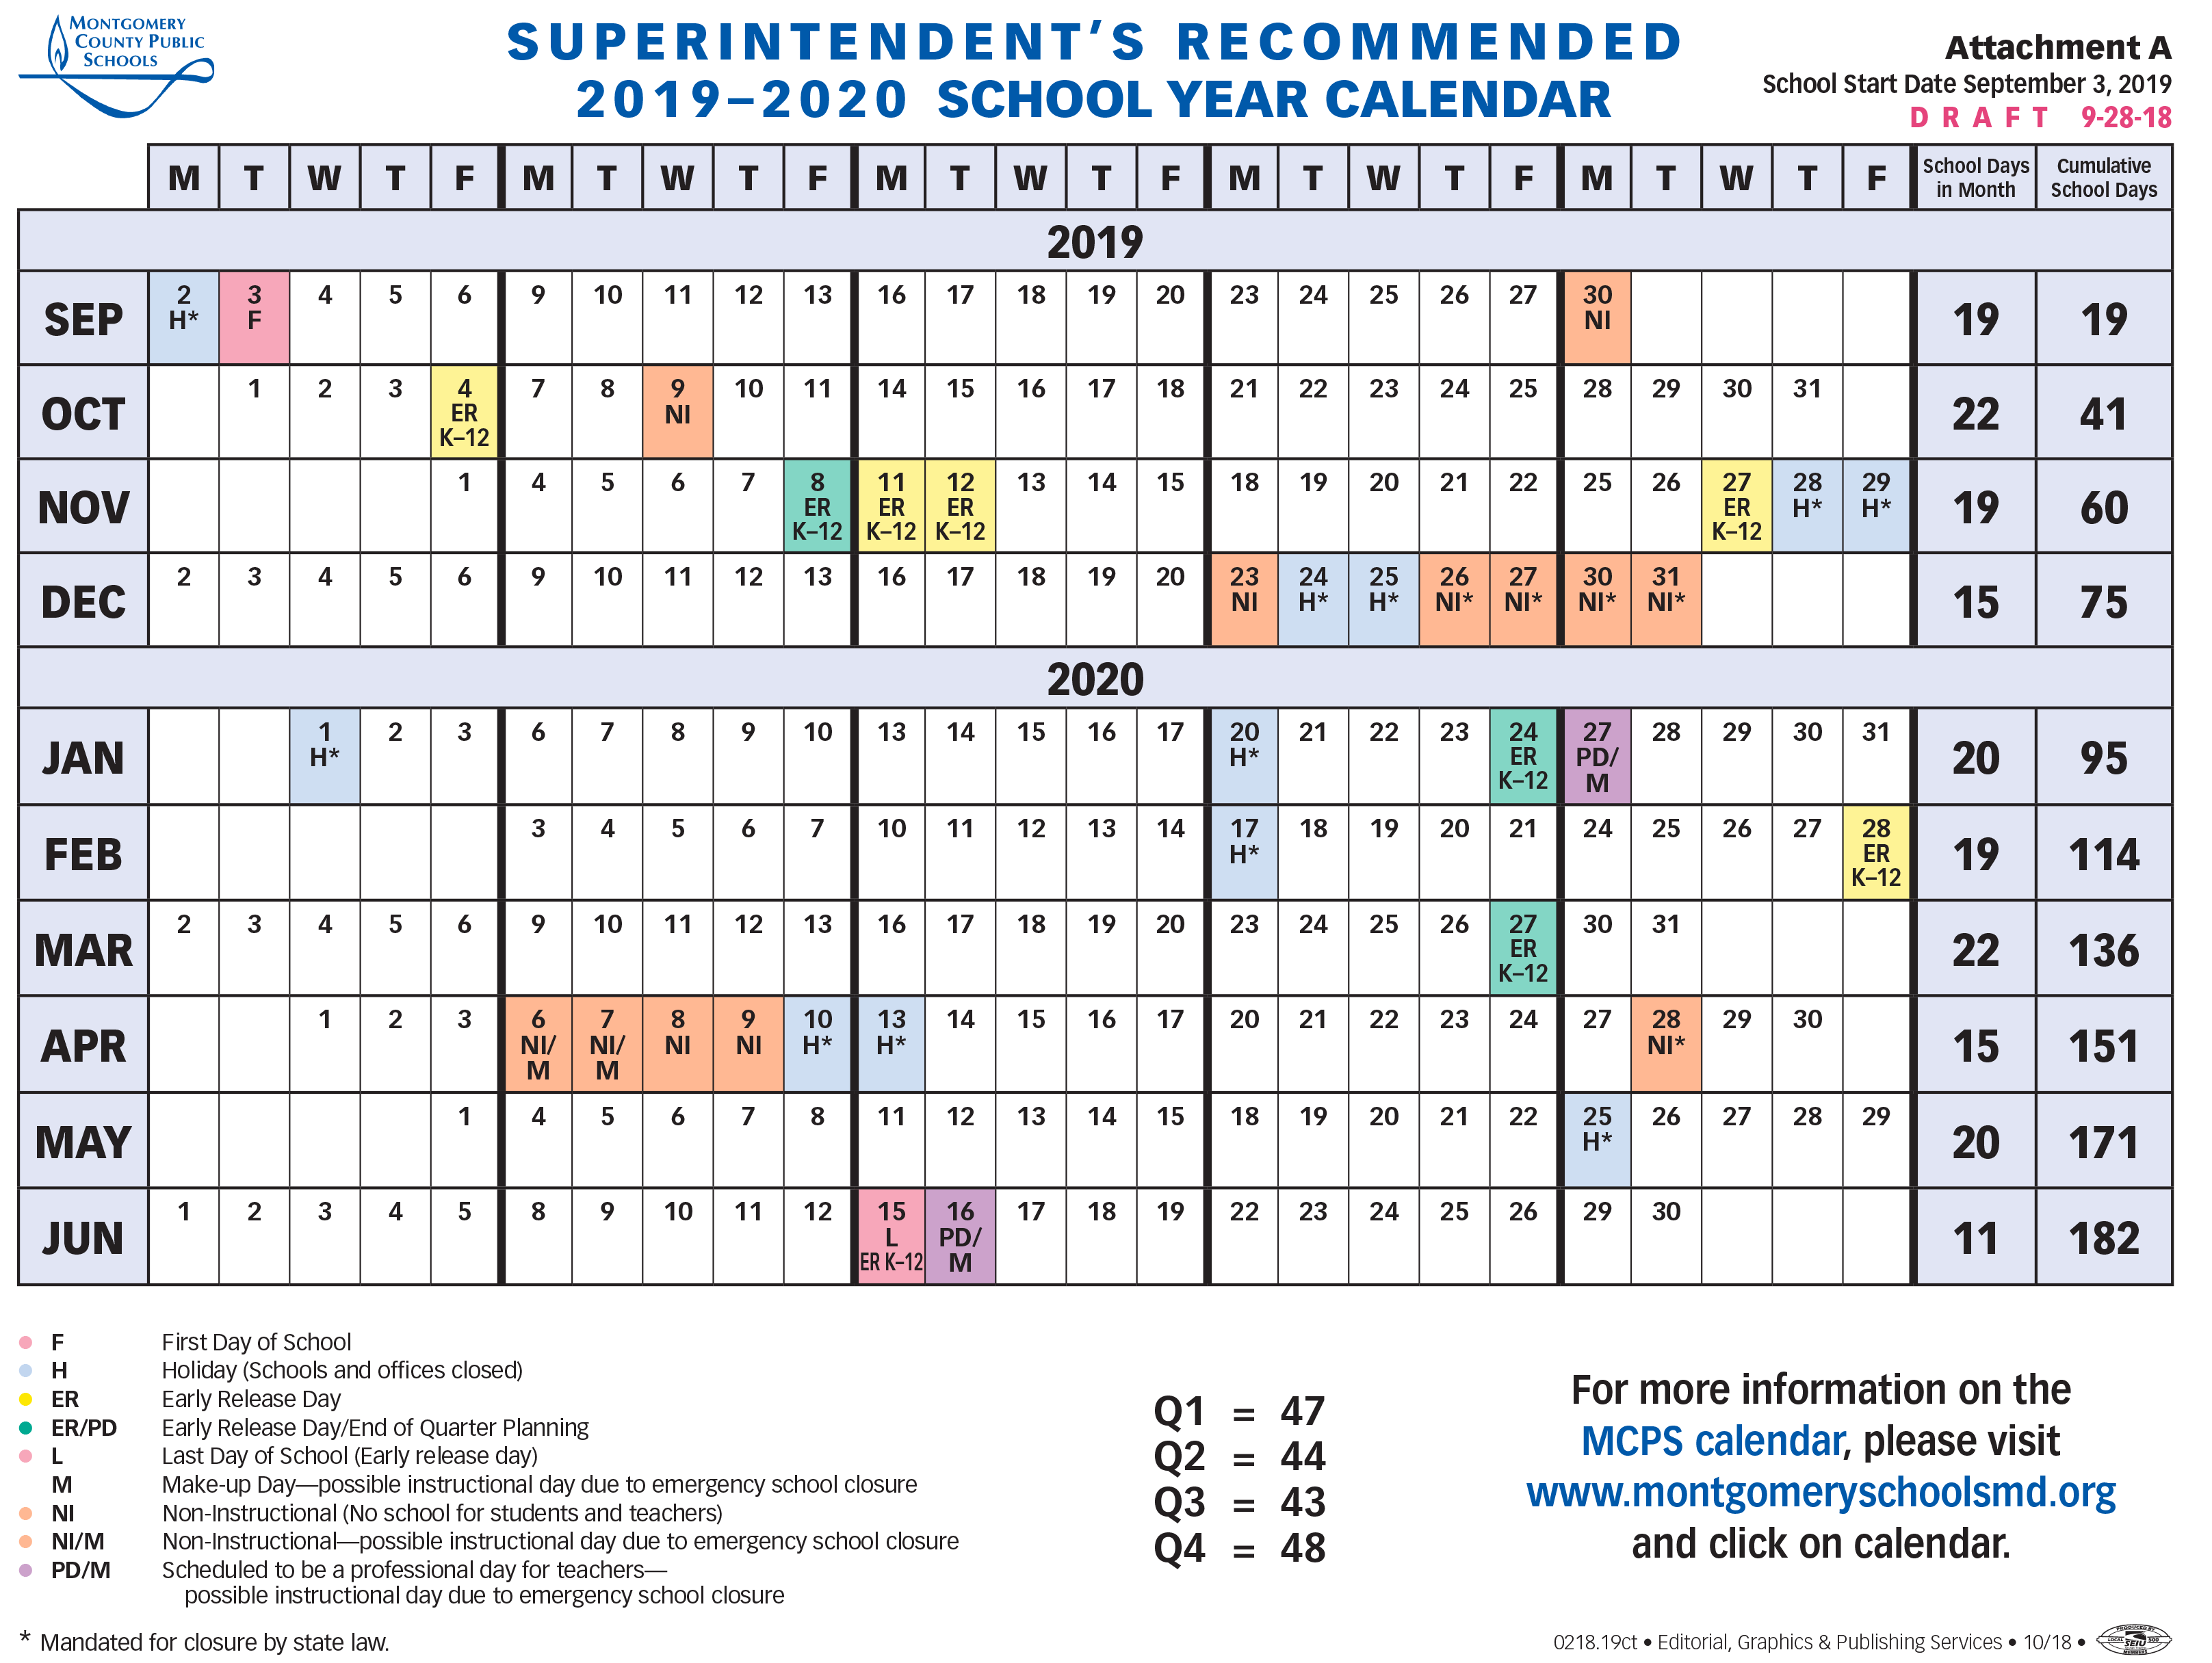 Montgomery County School Calendar 2019 20.Board Of Education Sets Calendar For 2019 2020 School Year